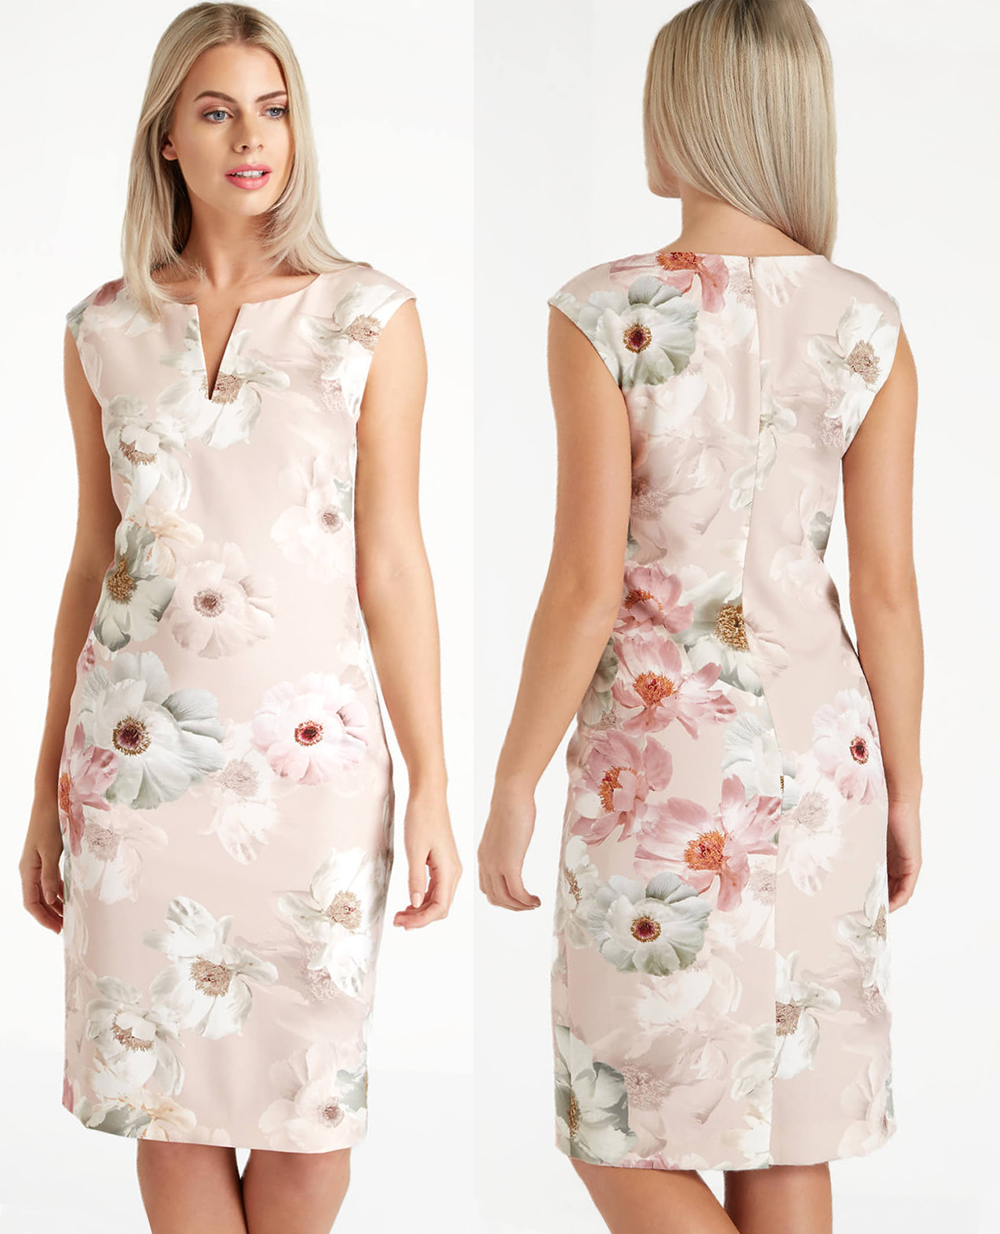 Low price blush dress 2021. Blush Pink Mother of the Bride dress 2021. Blush Pink Dress for a wedding guest 2021. What to wear for a Summer wedding 2021. Floral Dress for Sumer Wedding 2021. Blush Pink dress for Royal Ascot 2021.